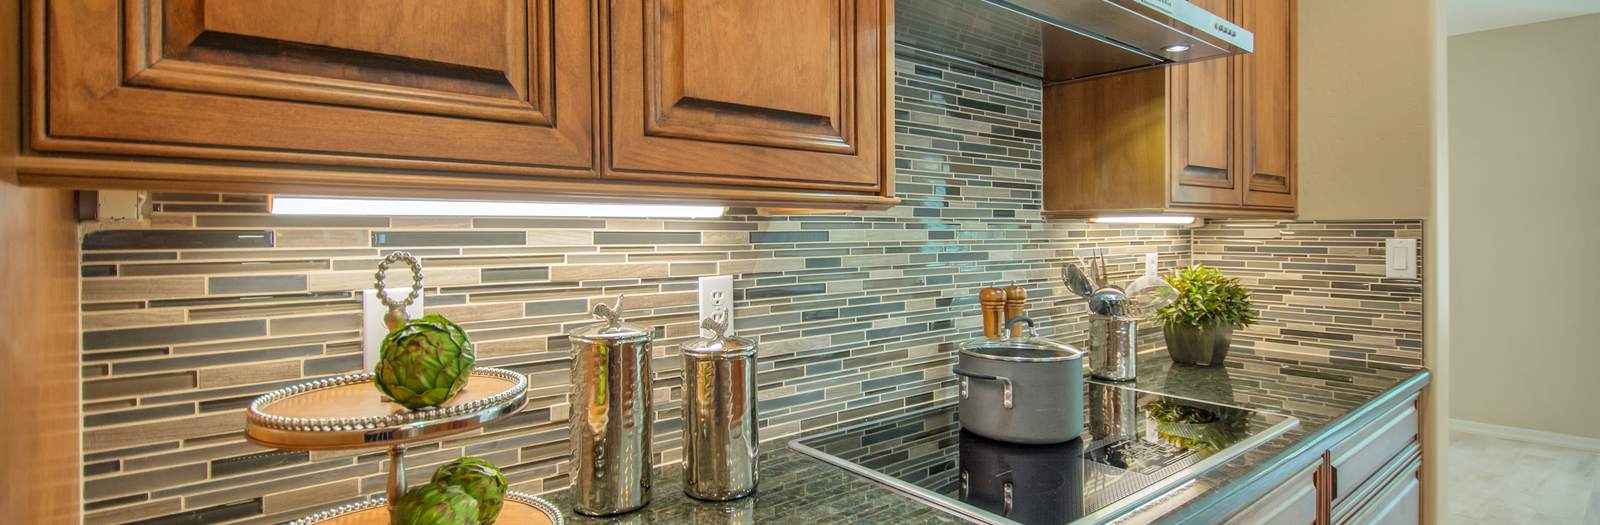 Ideas For Home Design Decorating And Remodeling DesignMine